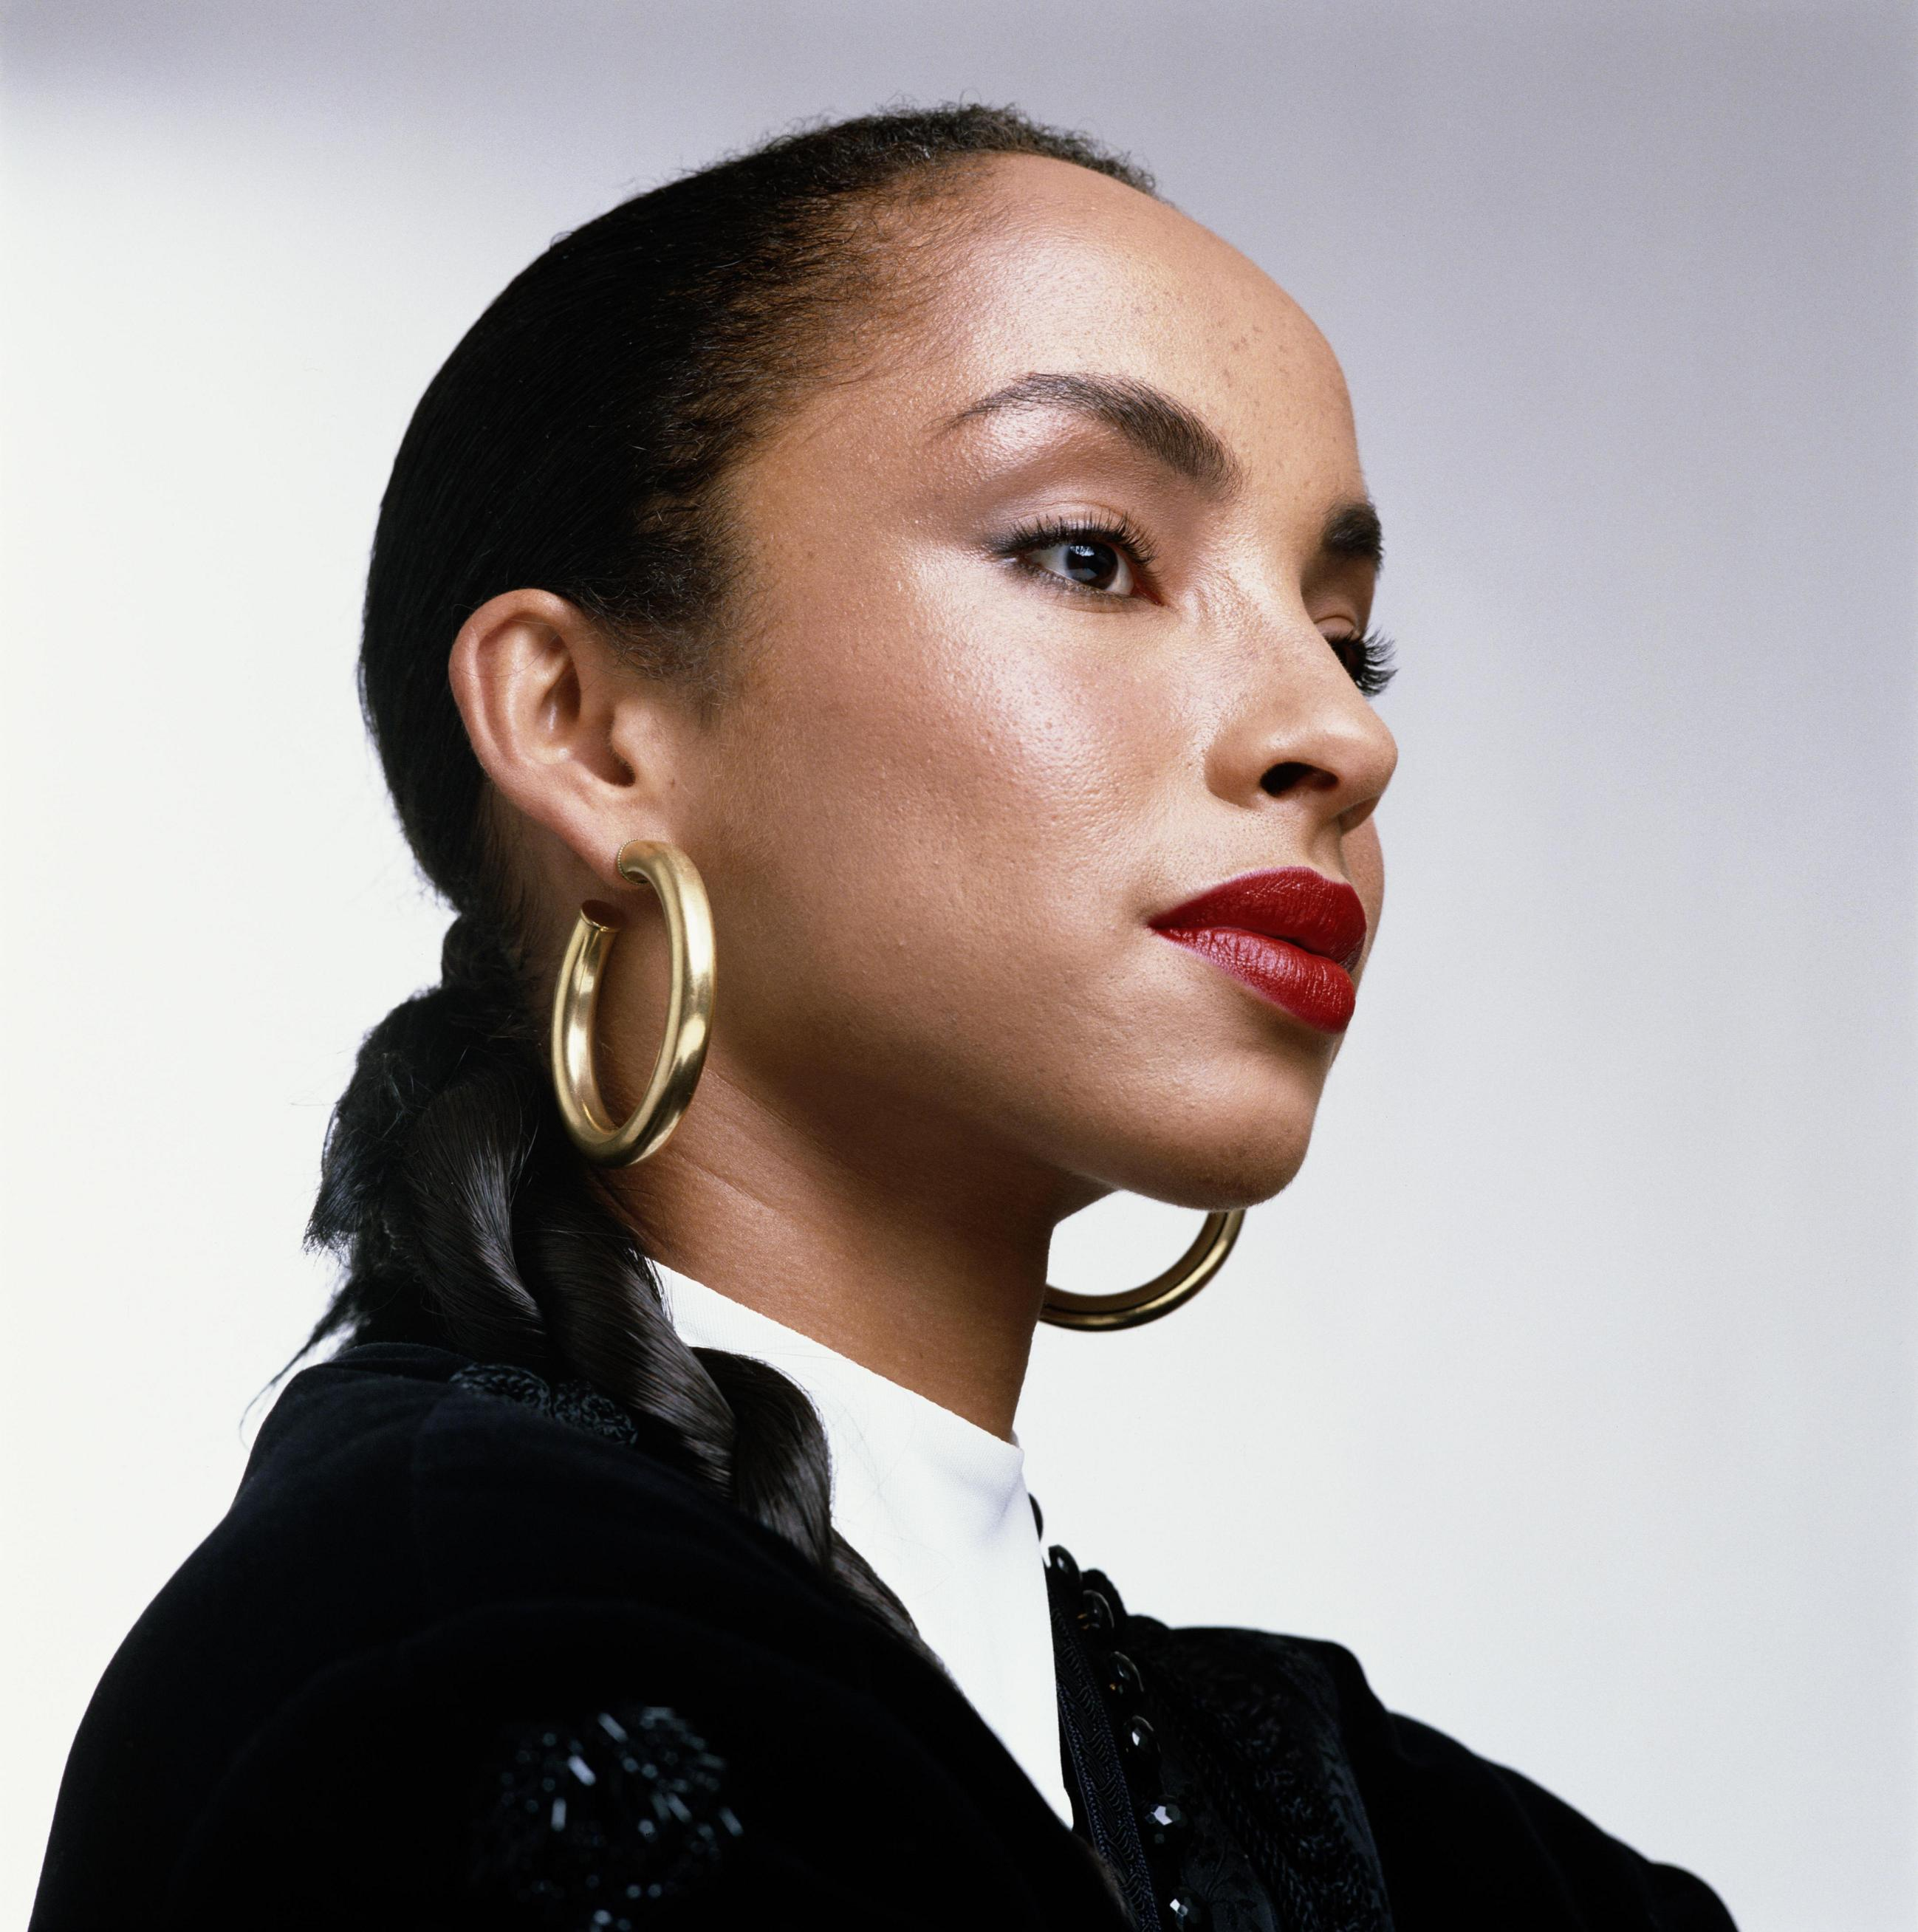 Sade photo 28 of 41 pics, wallpaper - photo #301702 ... Sade